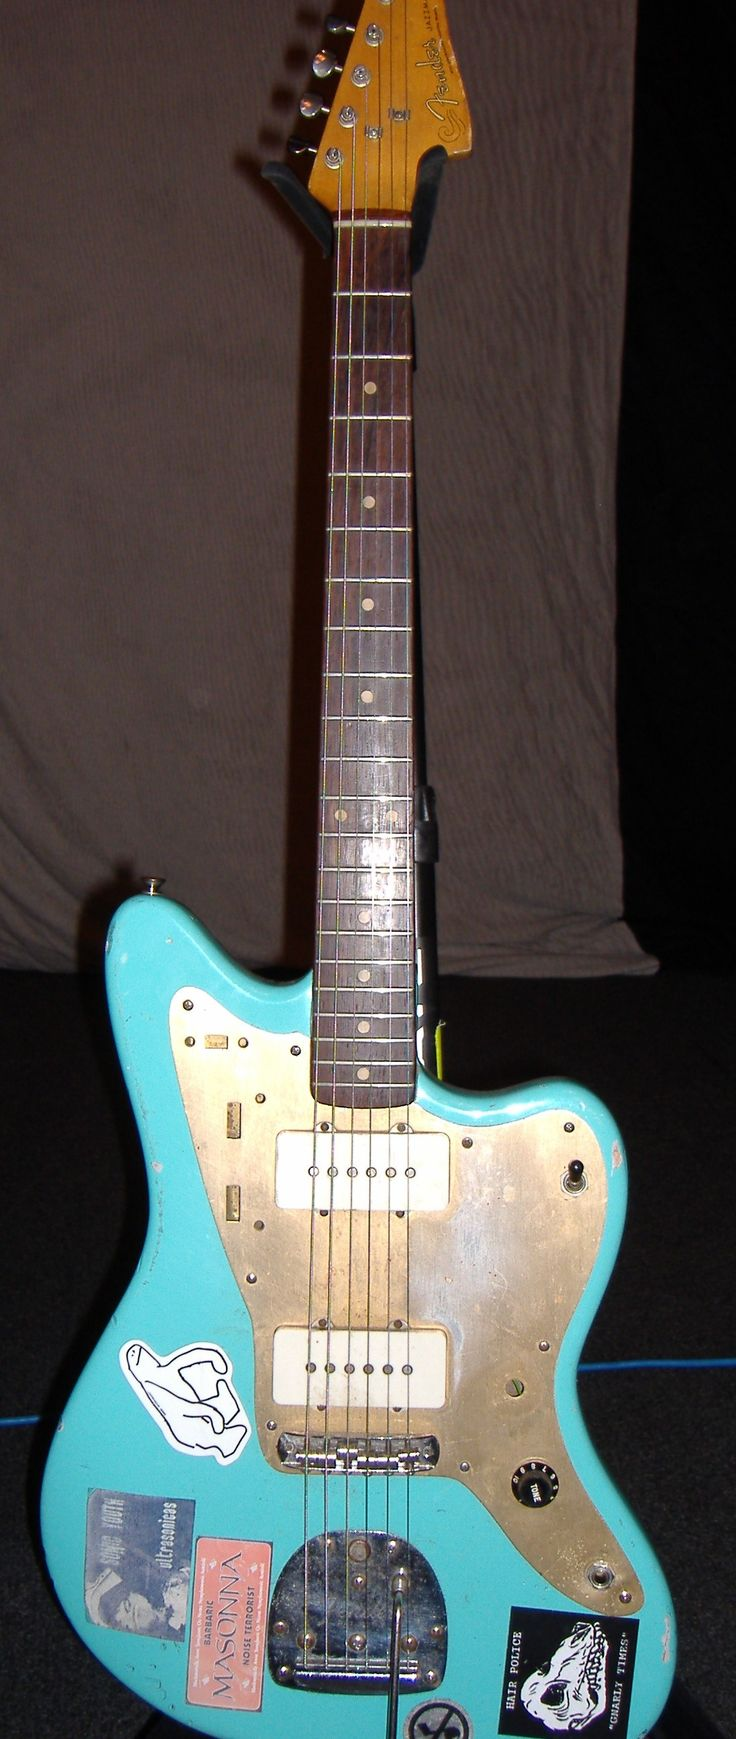 9efd2508e4249521a73999a65161a0e3 fender jaguar jazzmaster 1323 best guitars images on pinterest electric guitars, vintage  at reclaimingppi.co